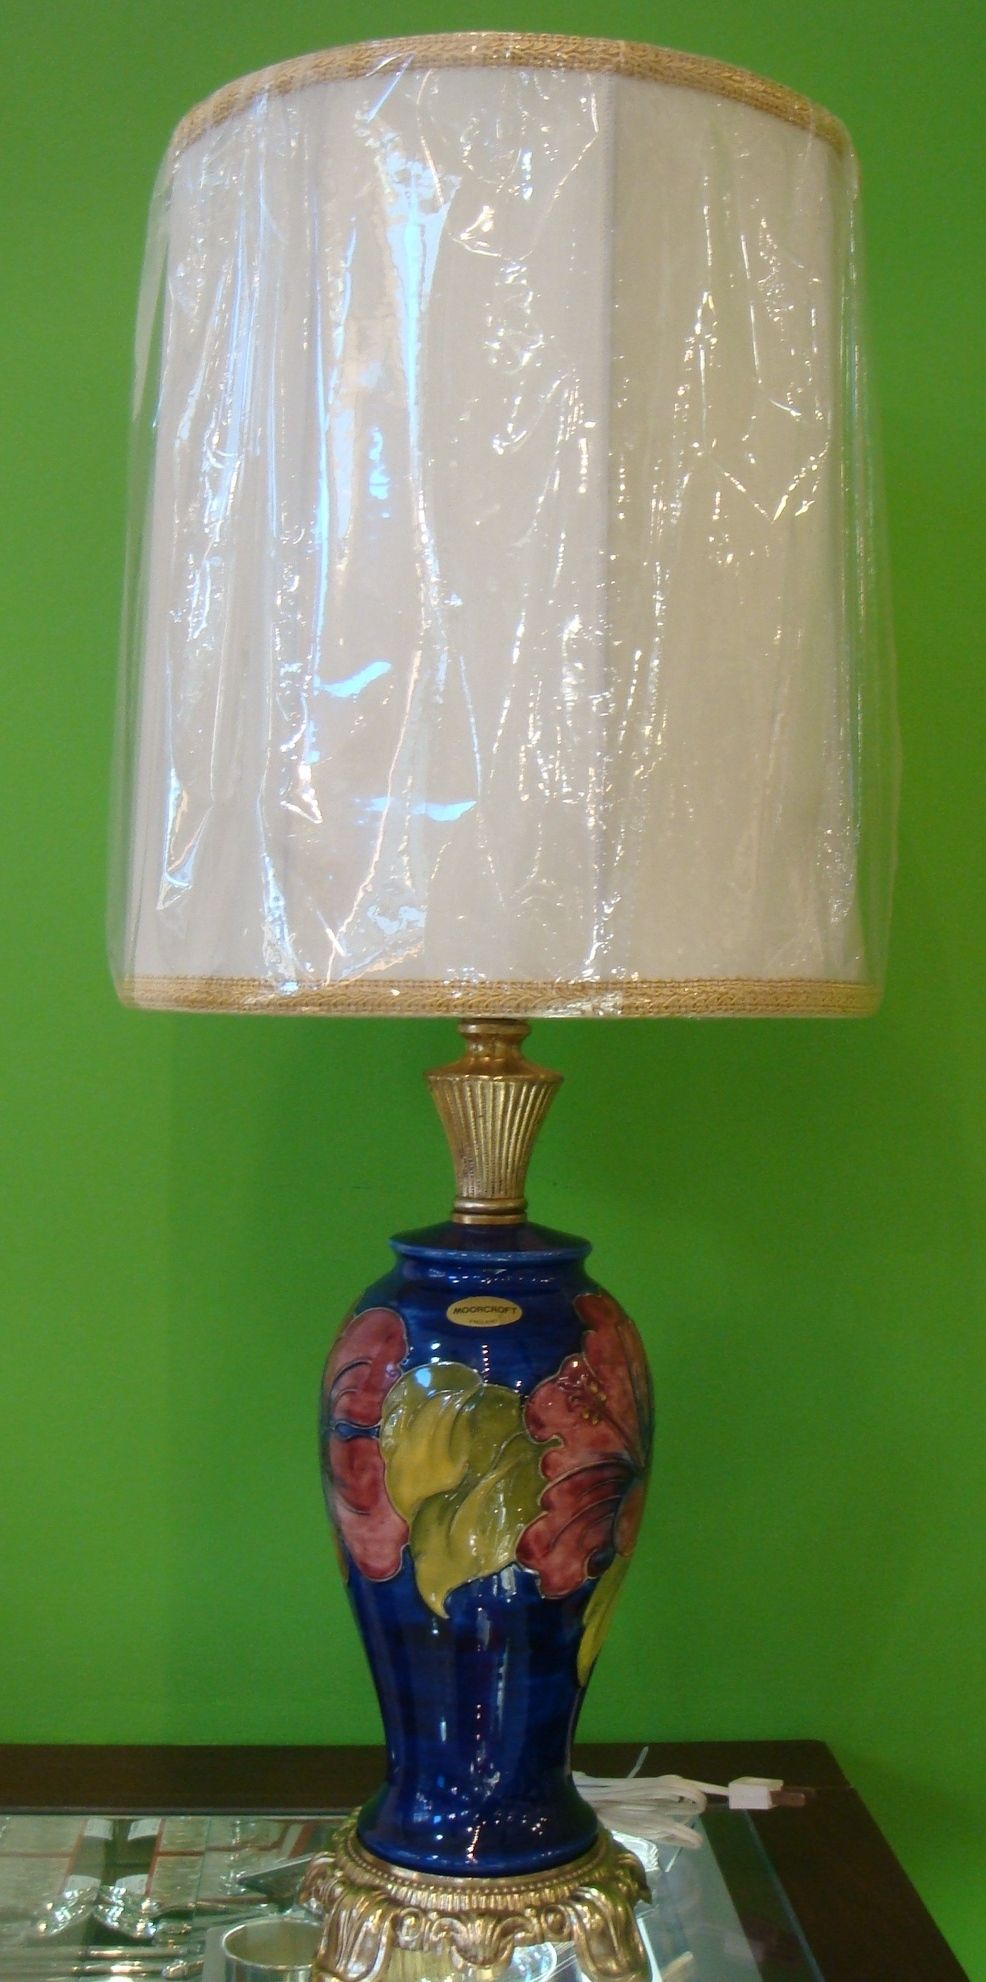 Beautiful table lamp with ceramic body by moorcroft dimensions h29 beautiful table lamp with ceramic body by moorcroft dimensions h29 price 845 aloadofball Choice Image